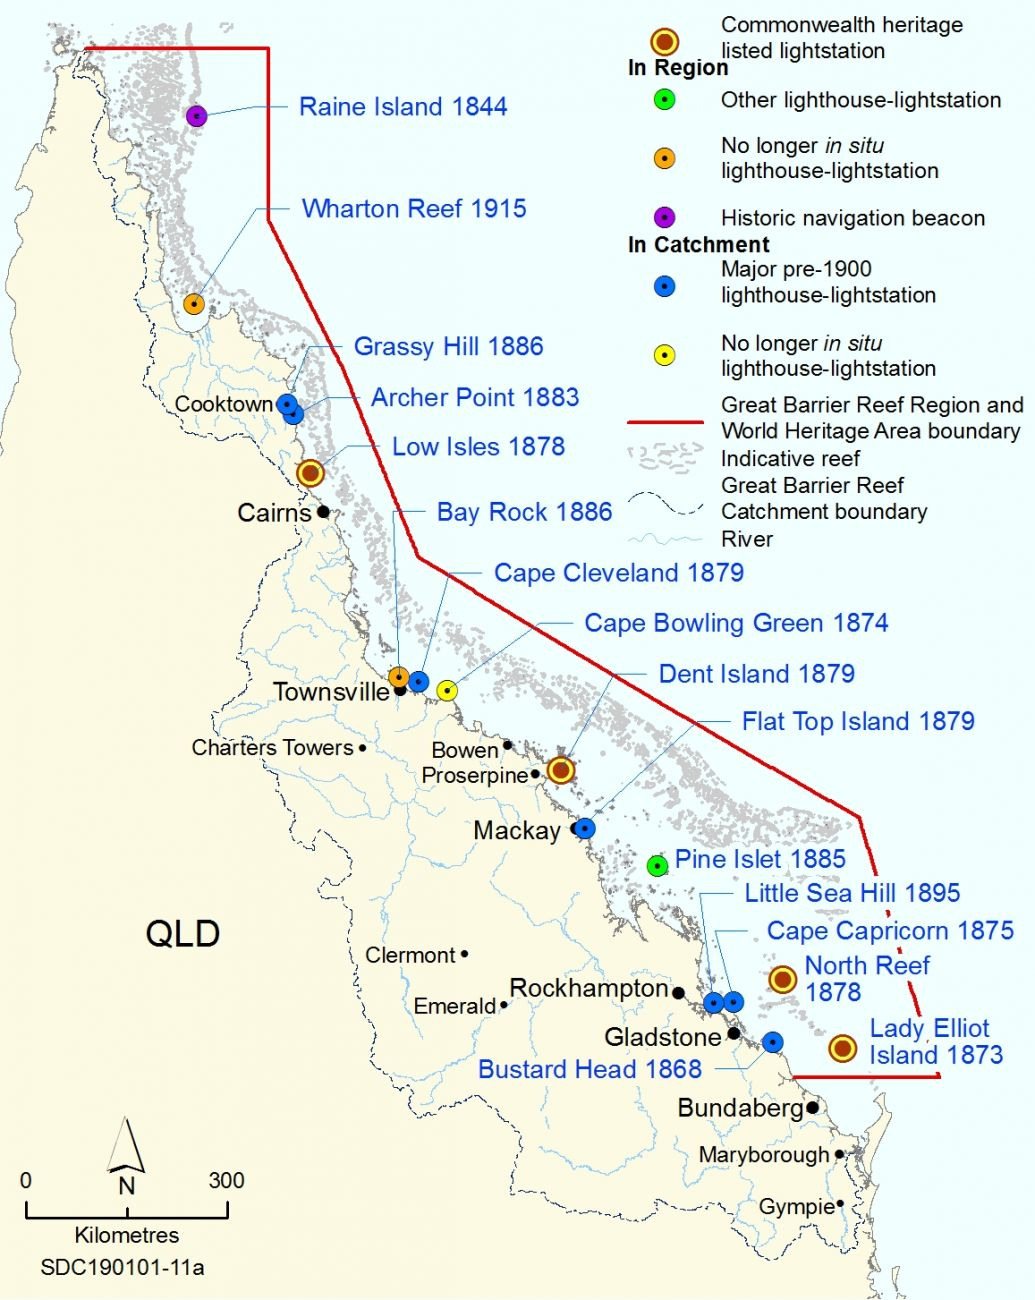 Historic lightstations and lighthouses in the Great Barrier Reef World Heritage Area